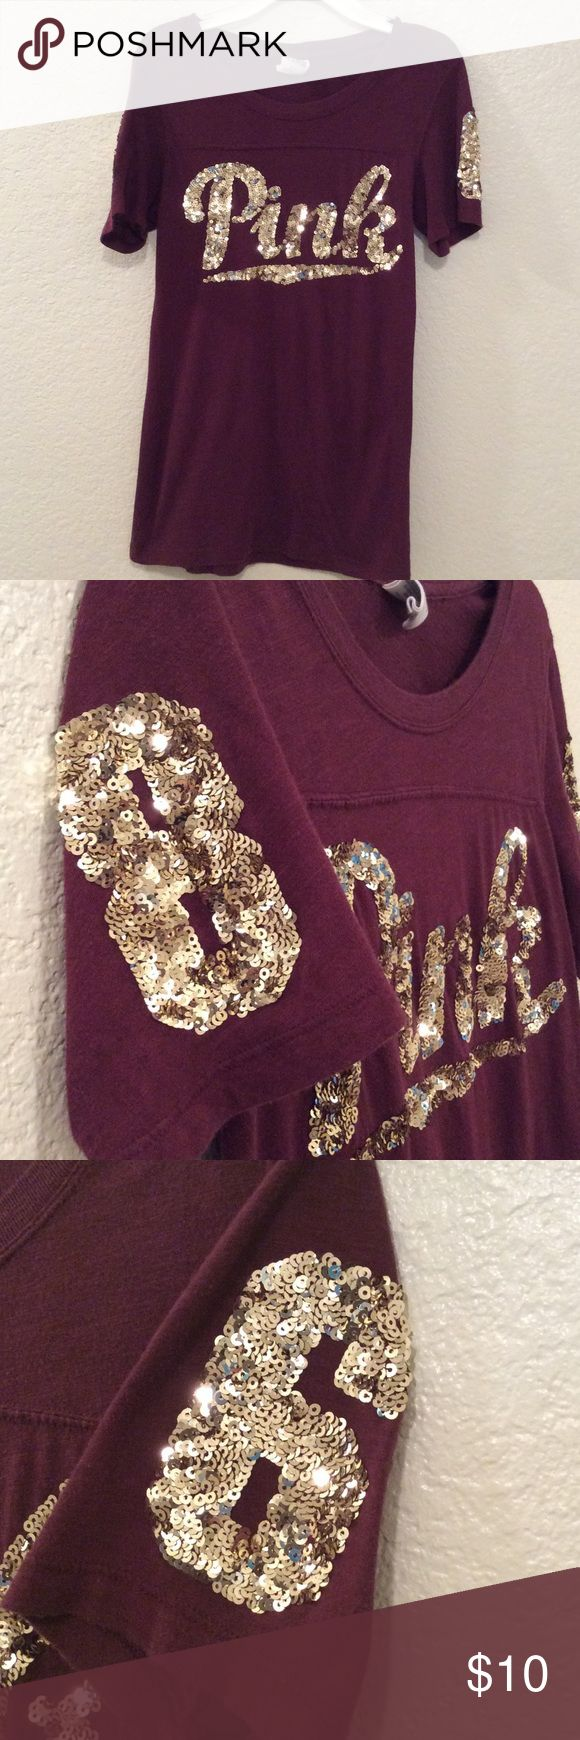 PINK burgundy and gold short sleeve top PINK burgundy and gold short sleeve top. Has some wear but still in good condition. PINK Tops Tees - Short Sleeve